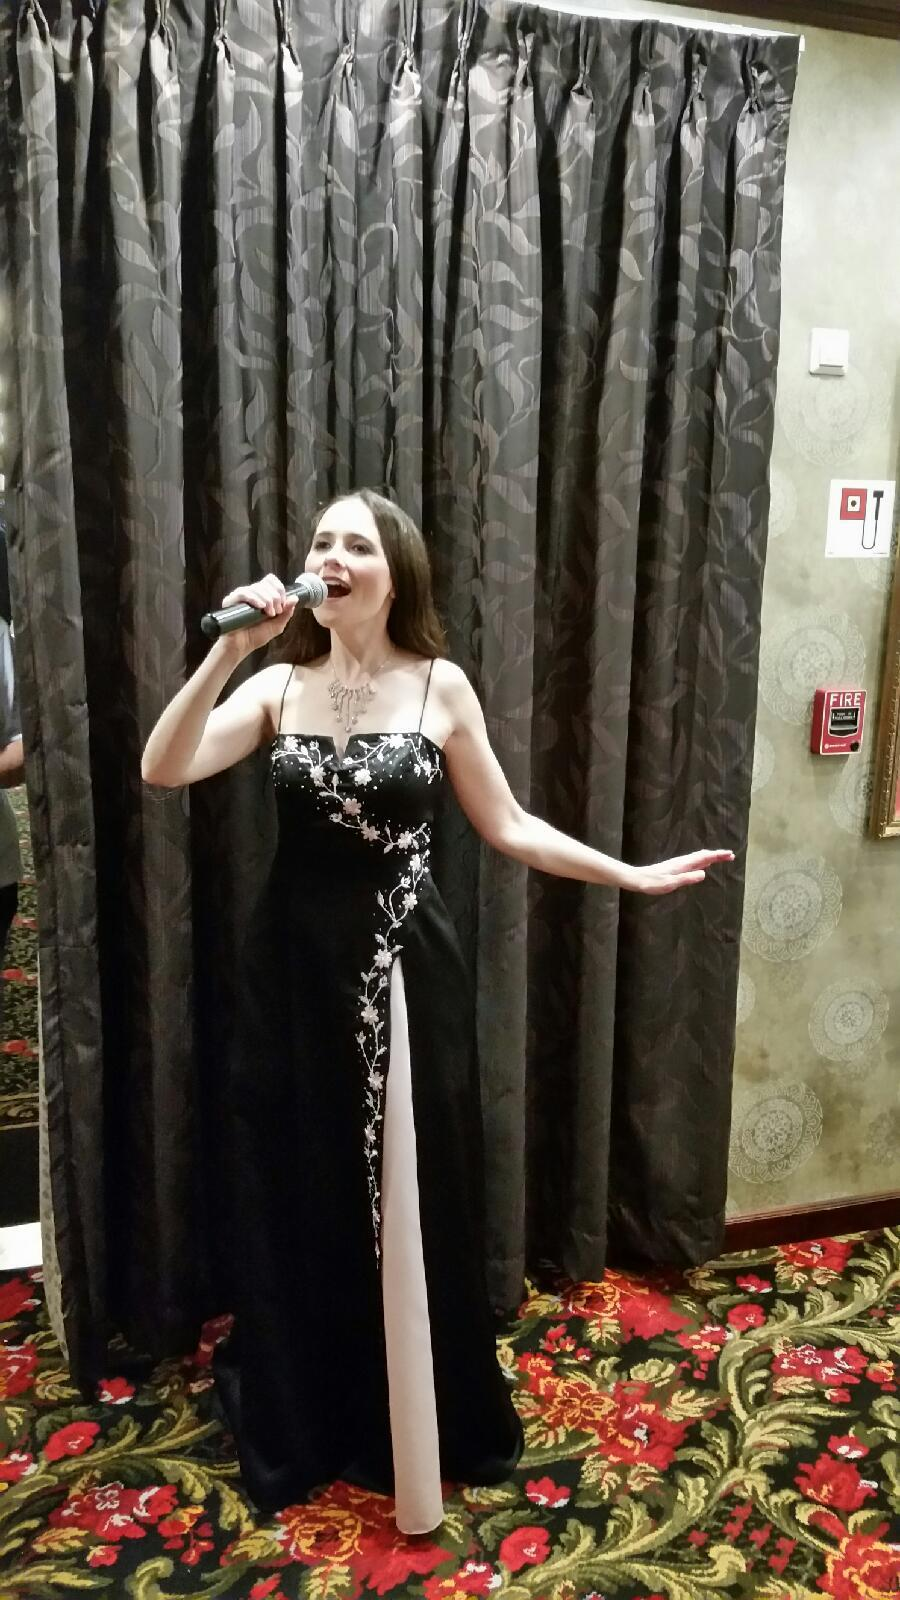 Lindy Pendzick - Singing and Entertaining in the Show Lounge